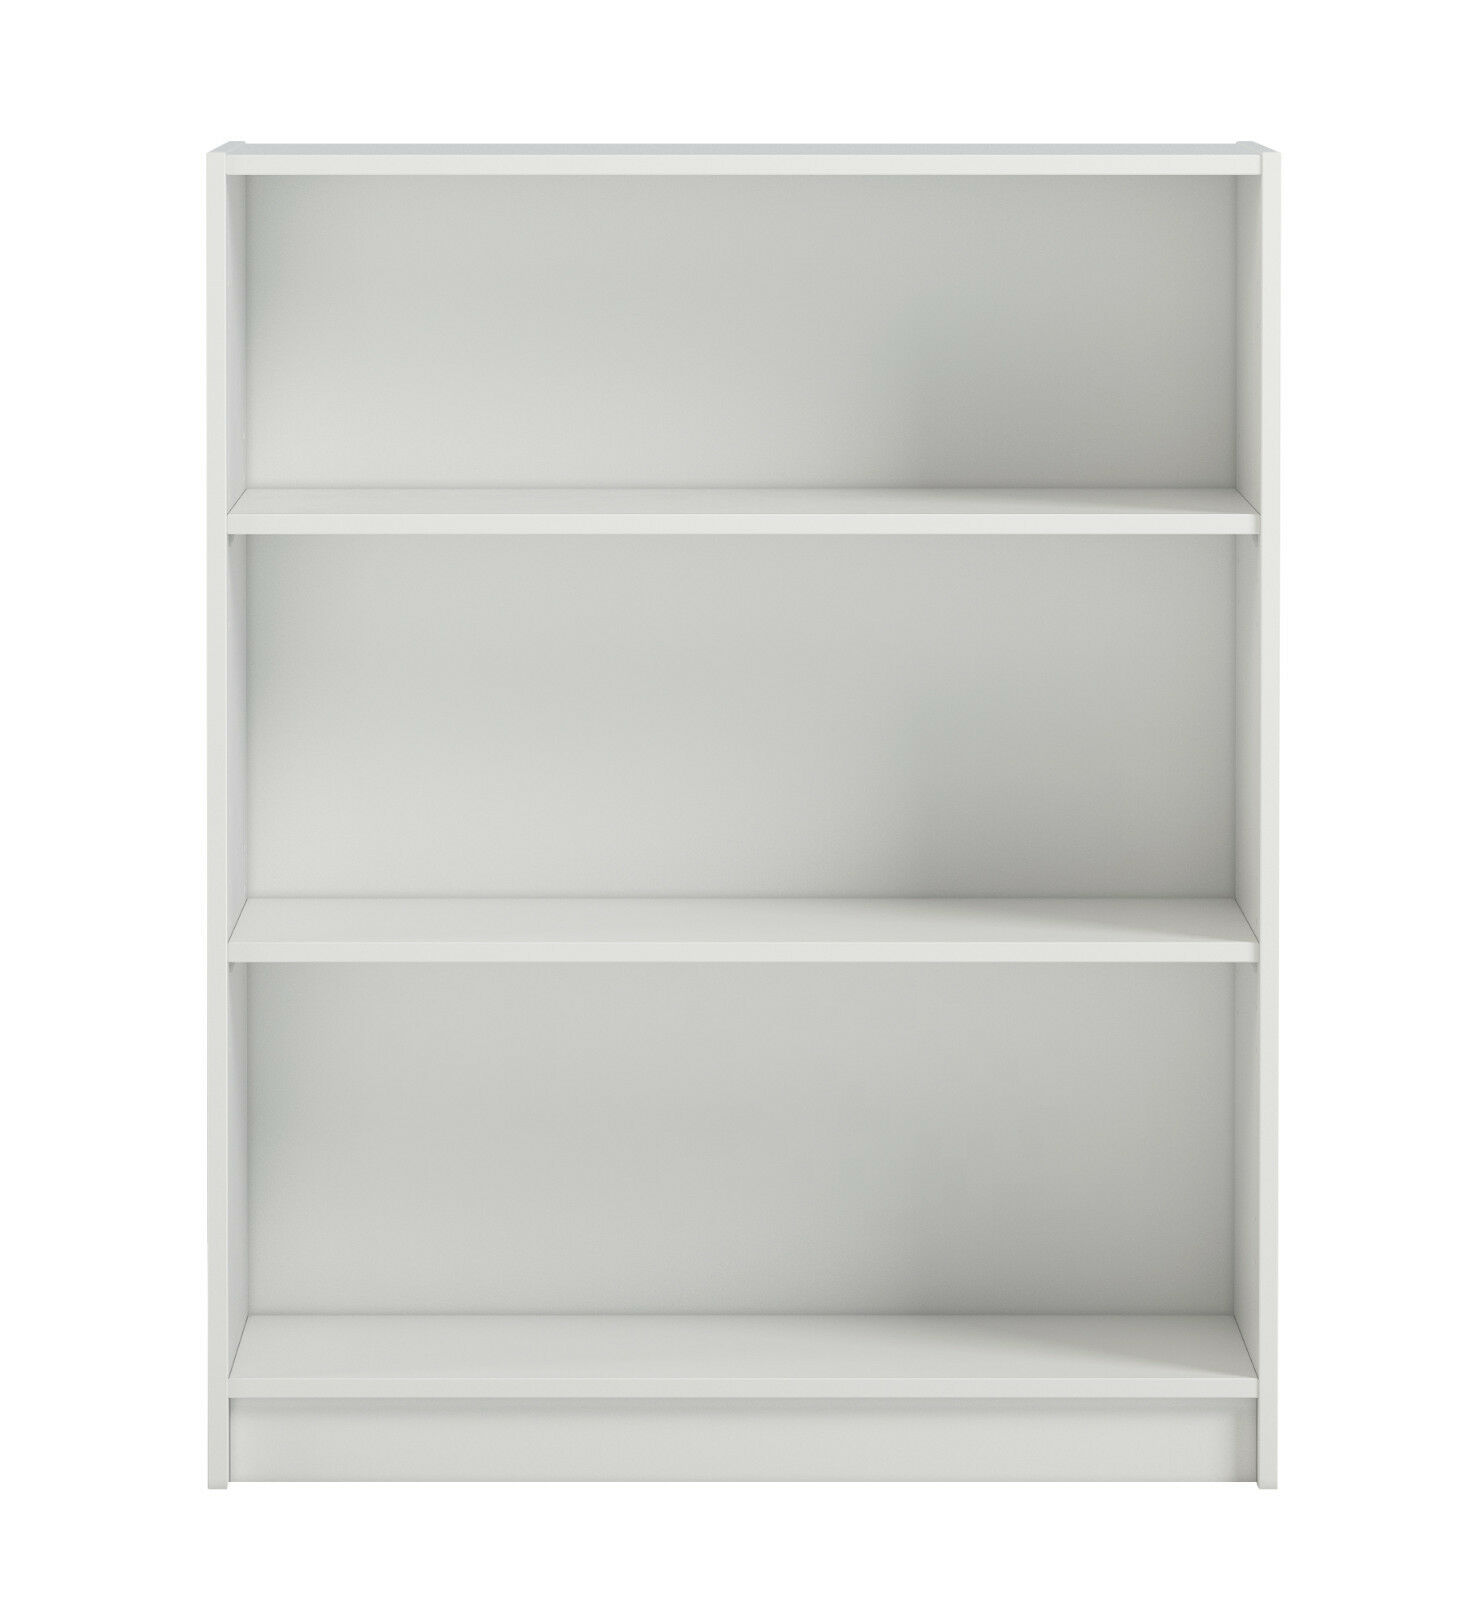 wide nadeau product grey nashville bookcase